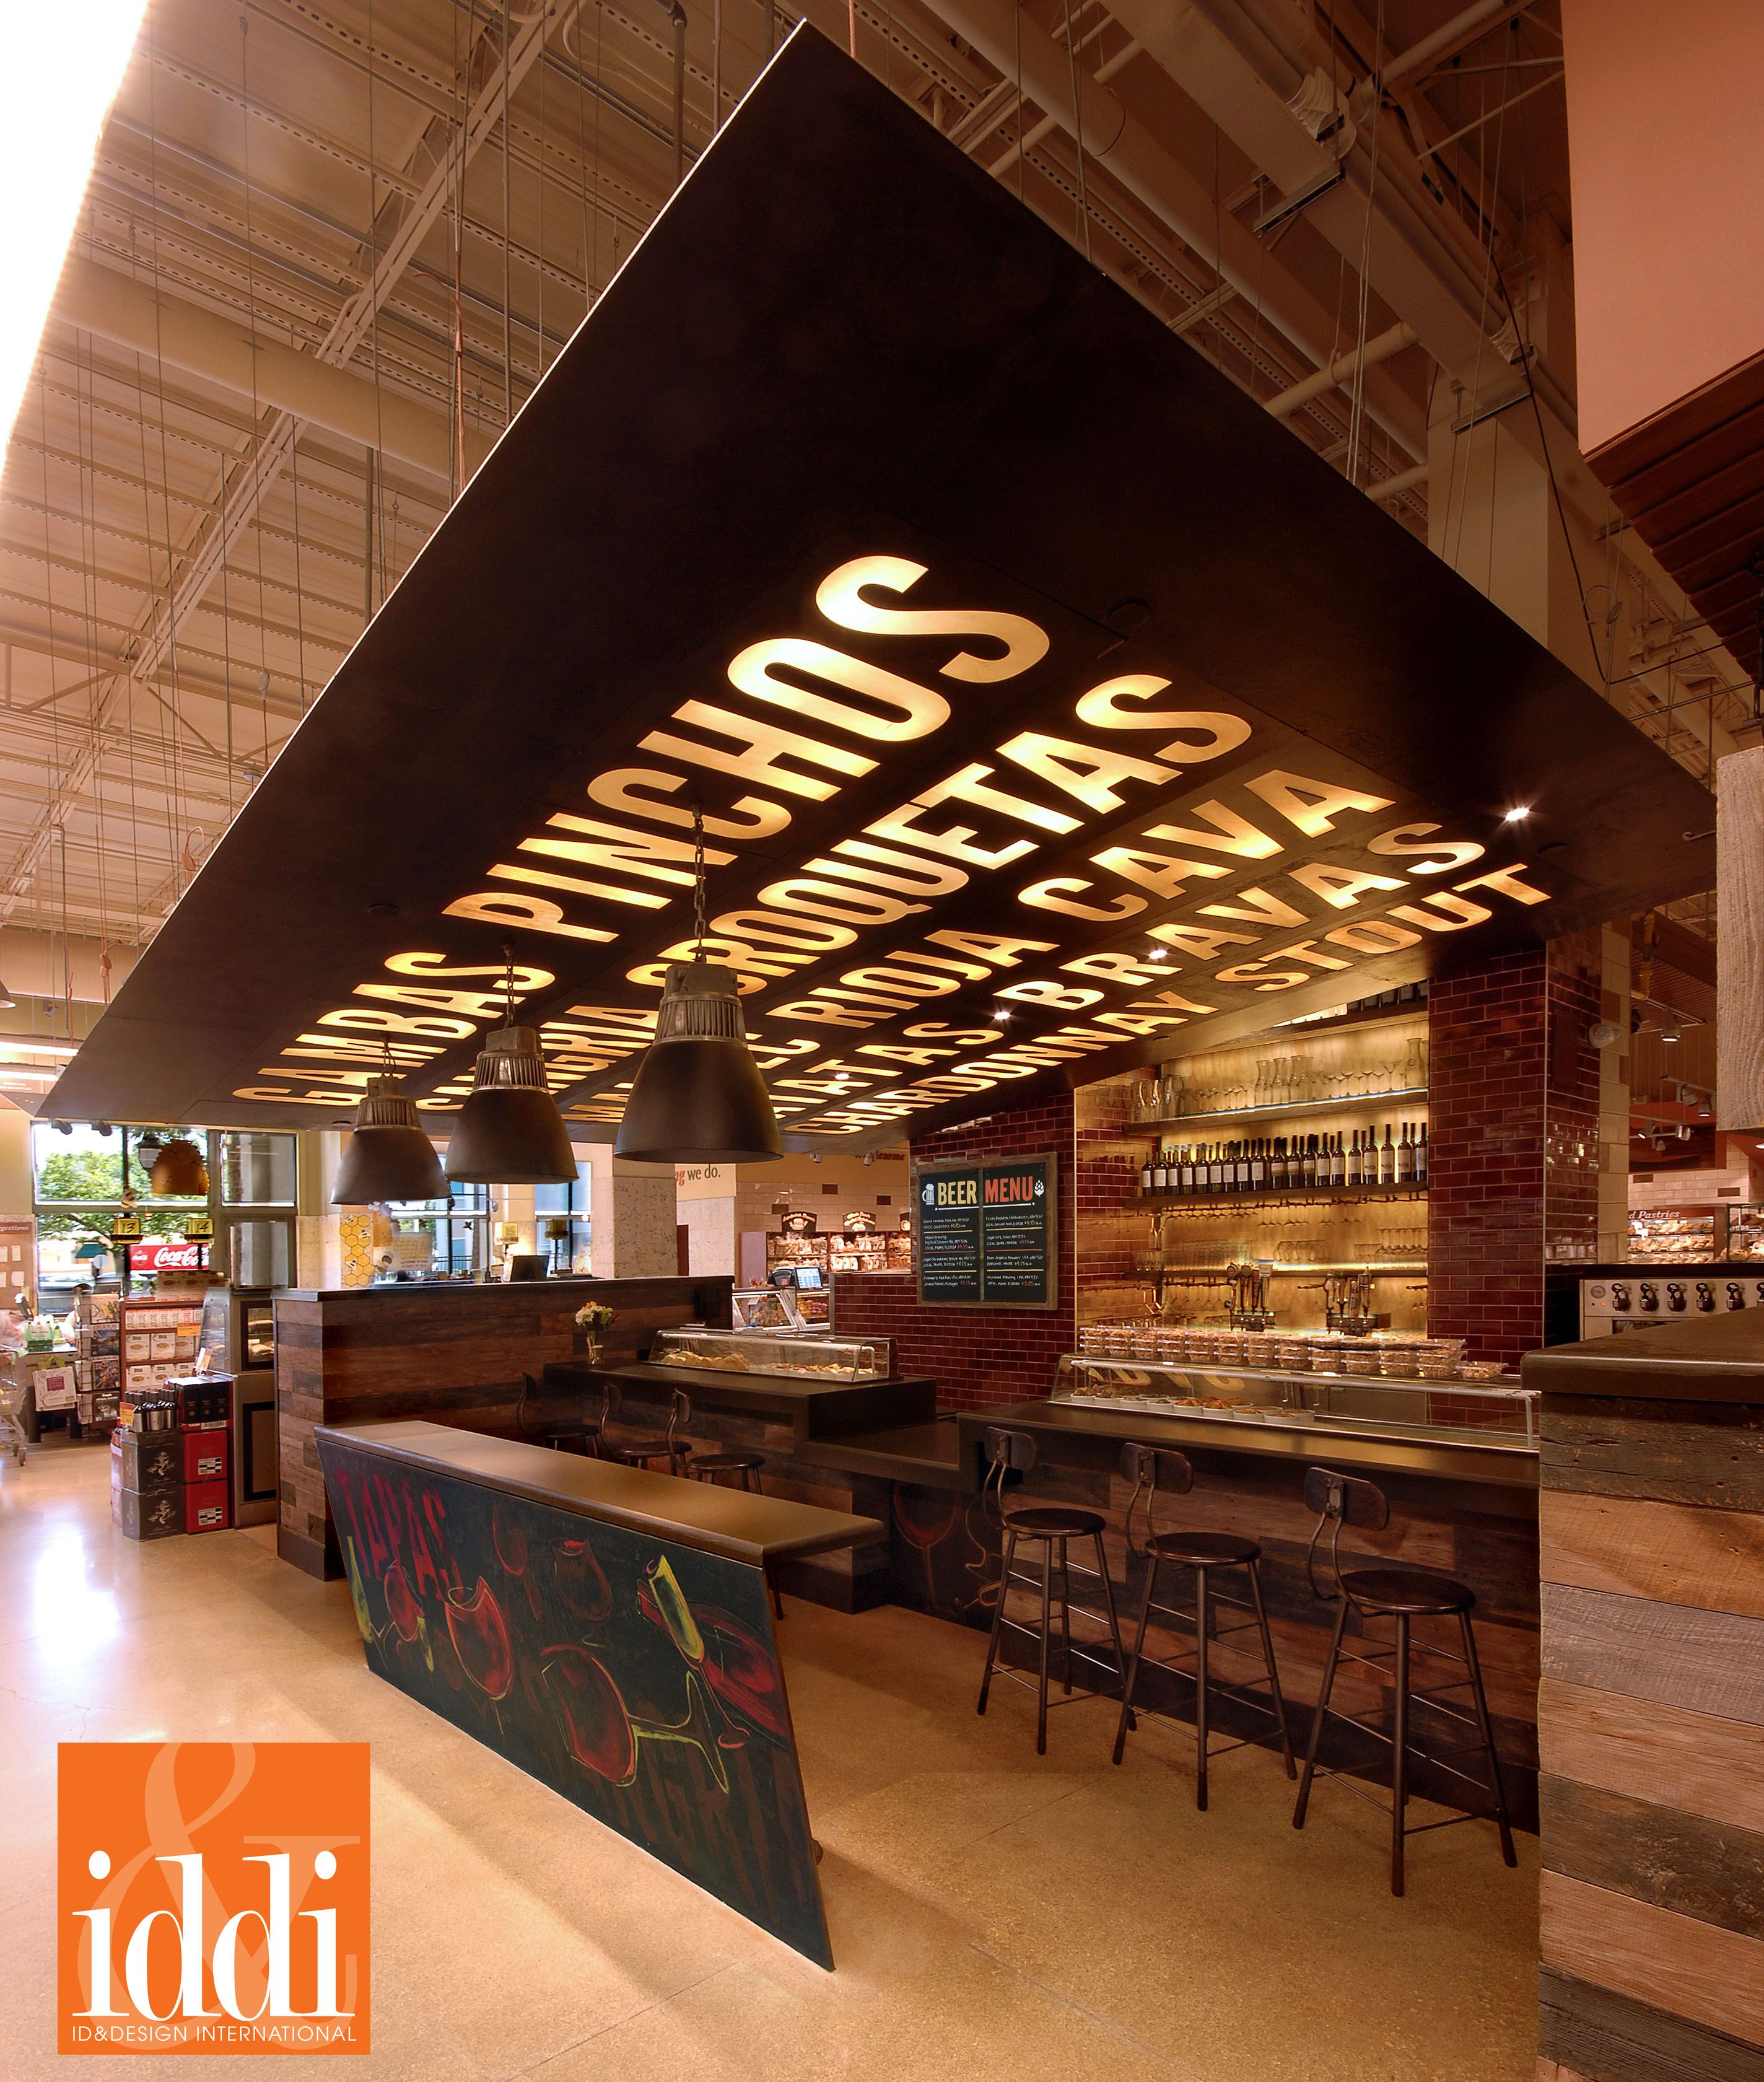 Whole Foods Market C Gables Florida Wine And Tapas Bar Designed By Id Design International